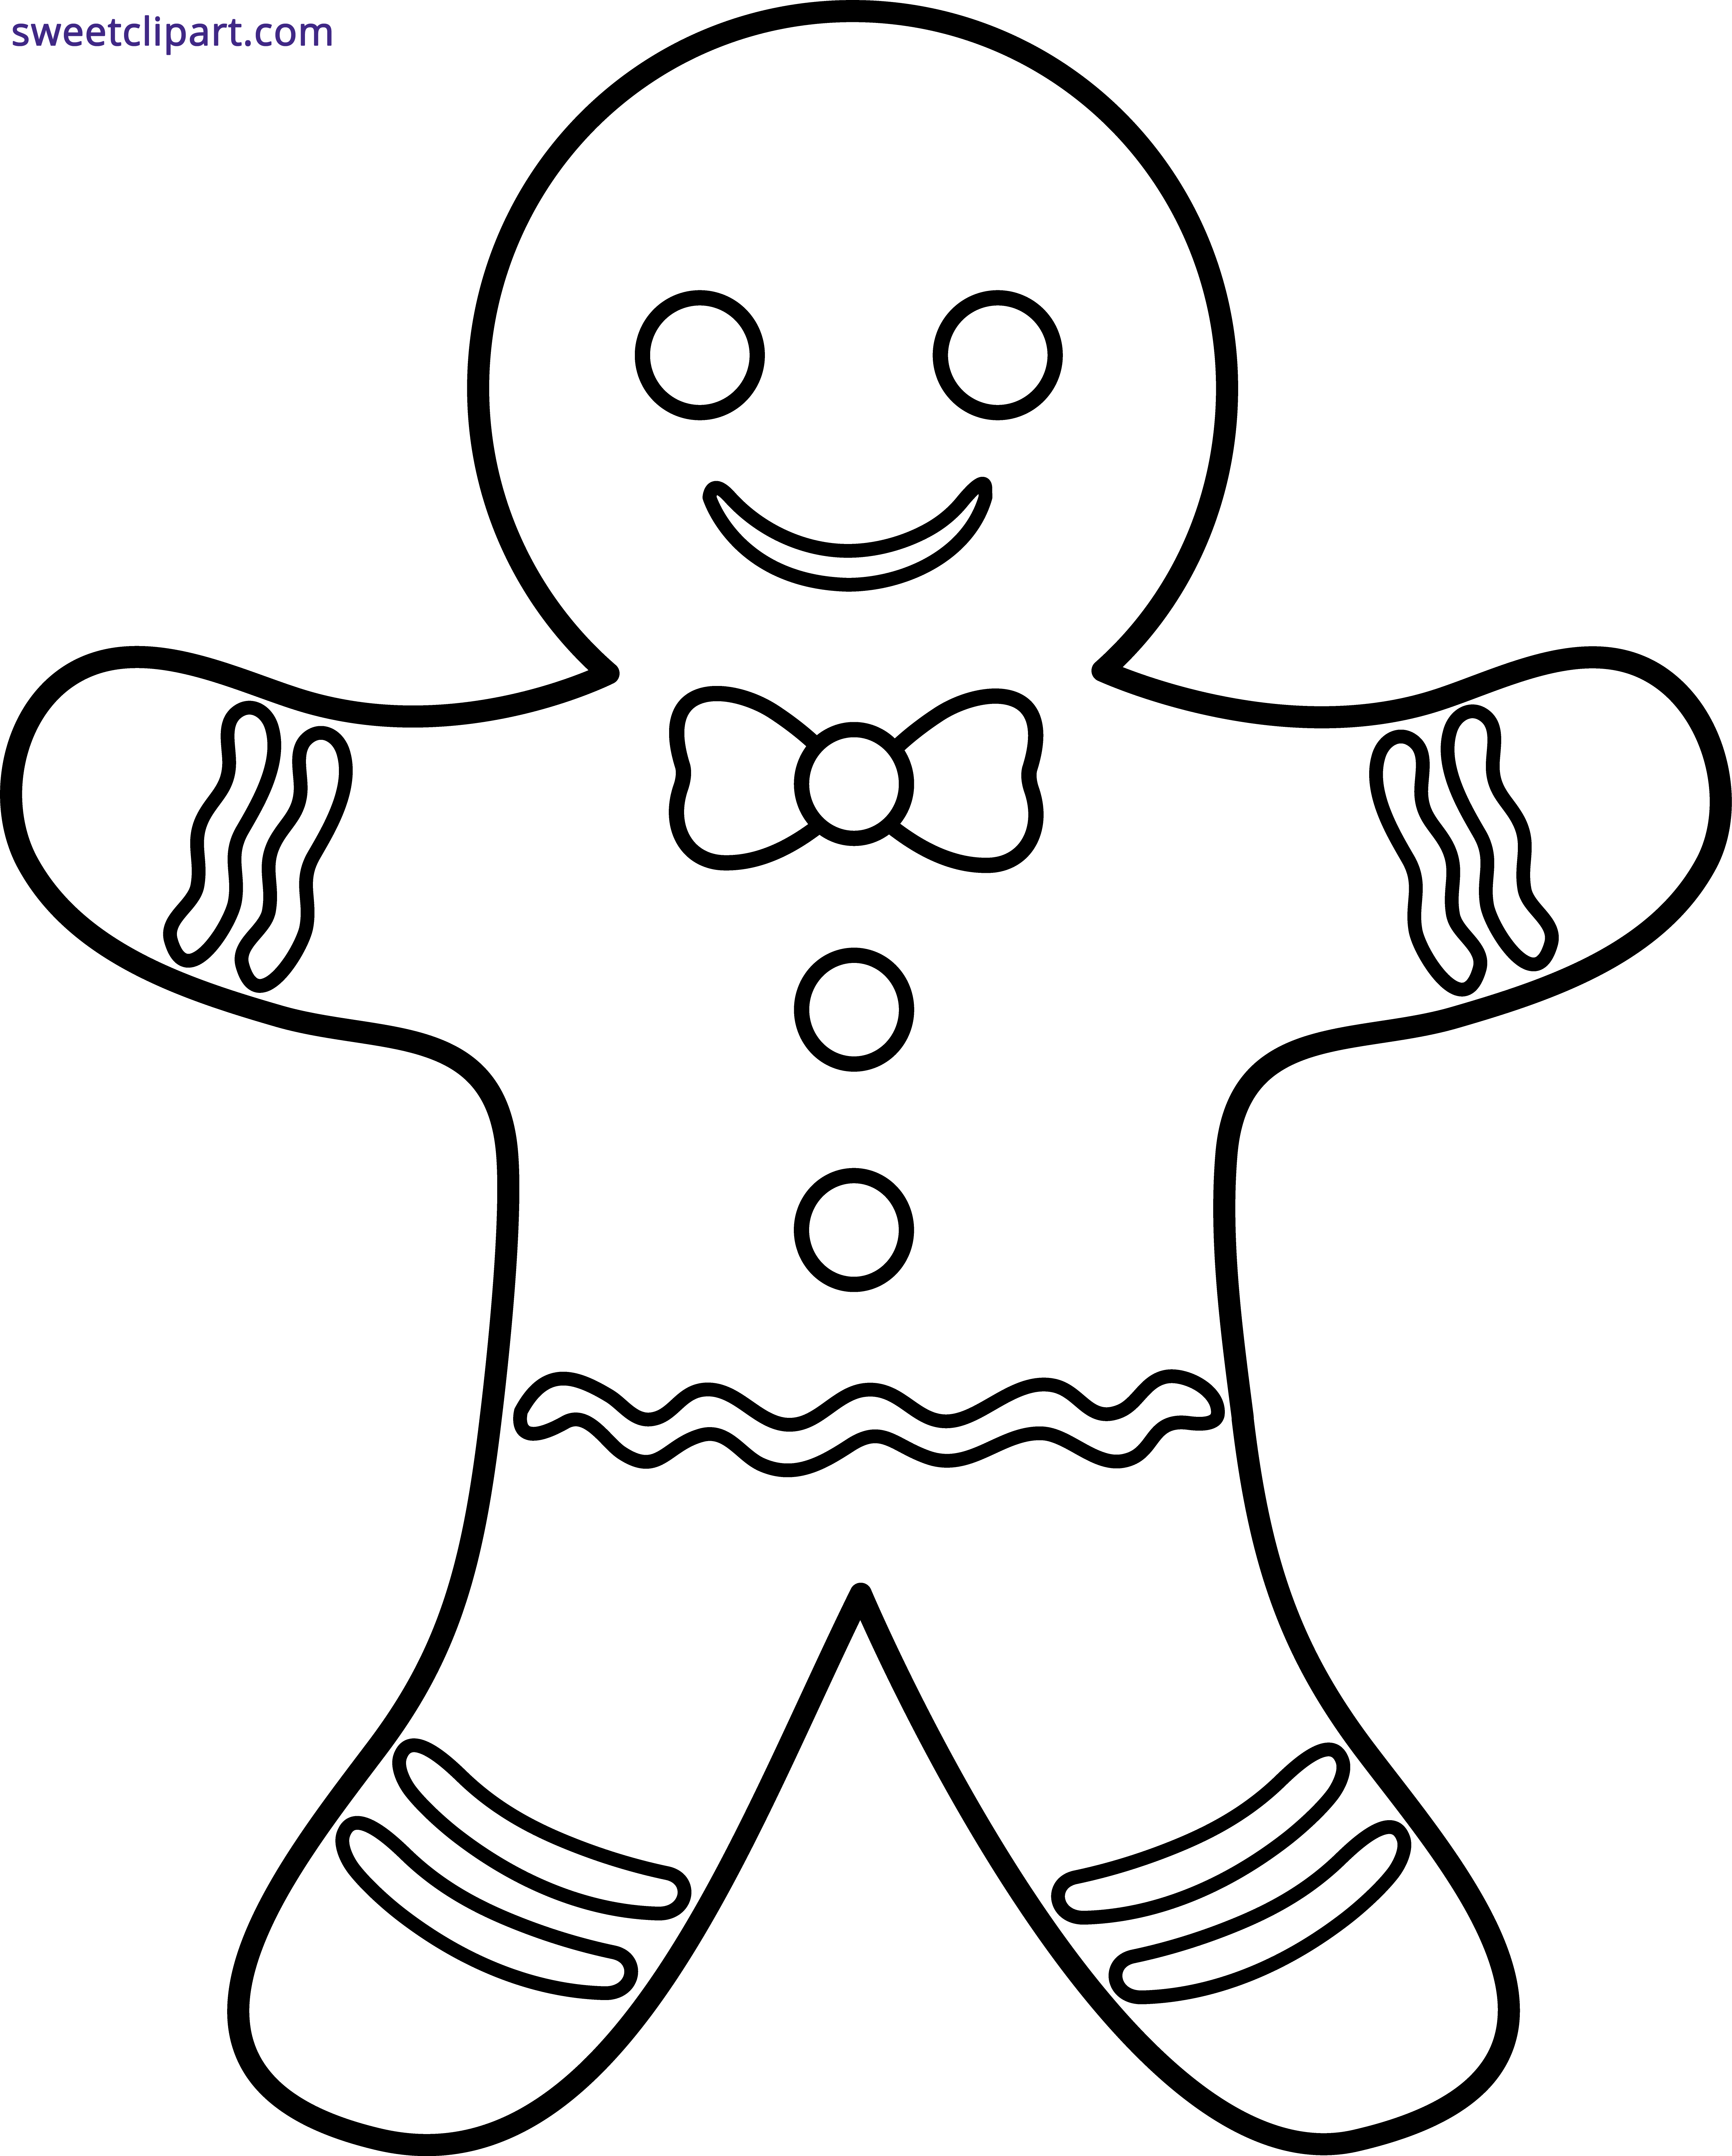 Man with book clipart jpg royalty free Gingerbread Man Outline Clipart - Sweet Clip Art jpg royalty free